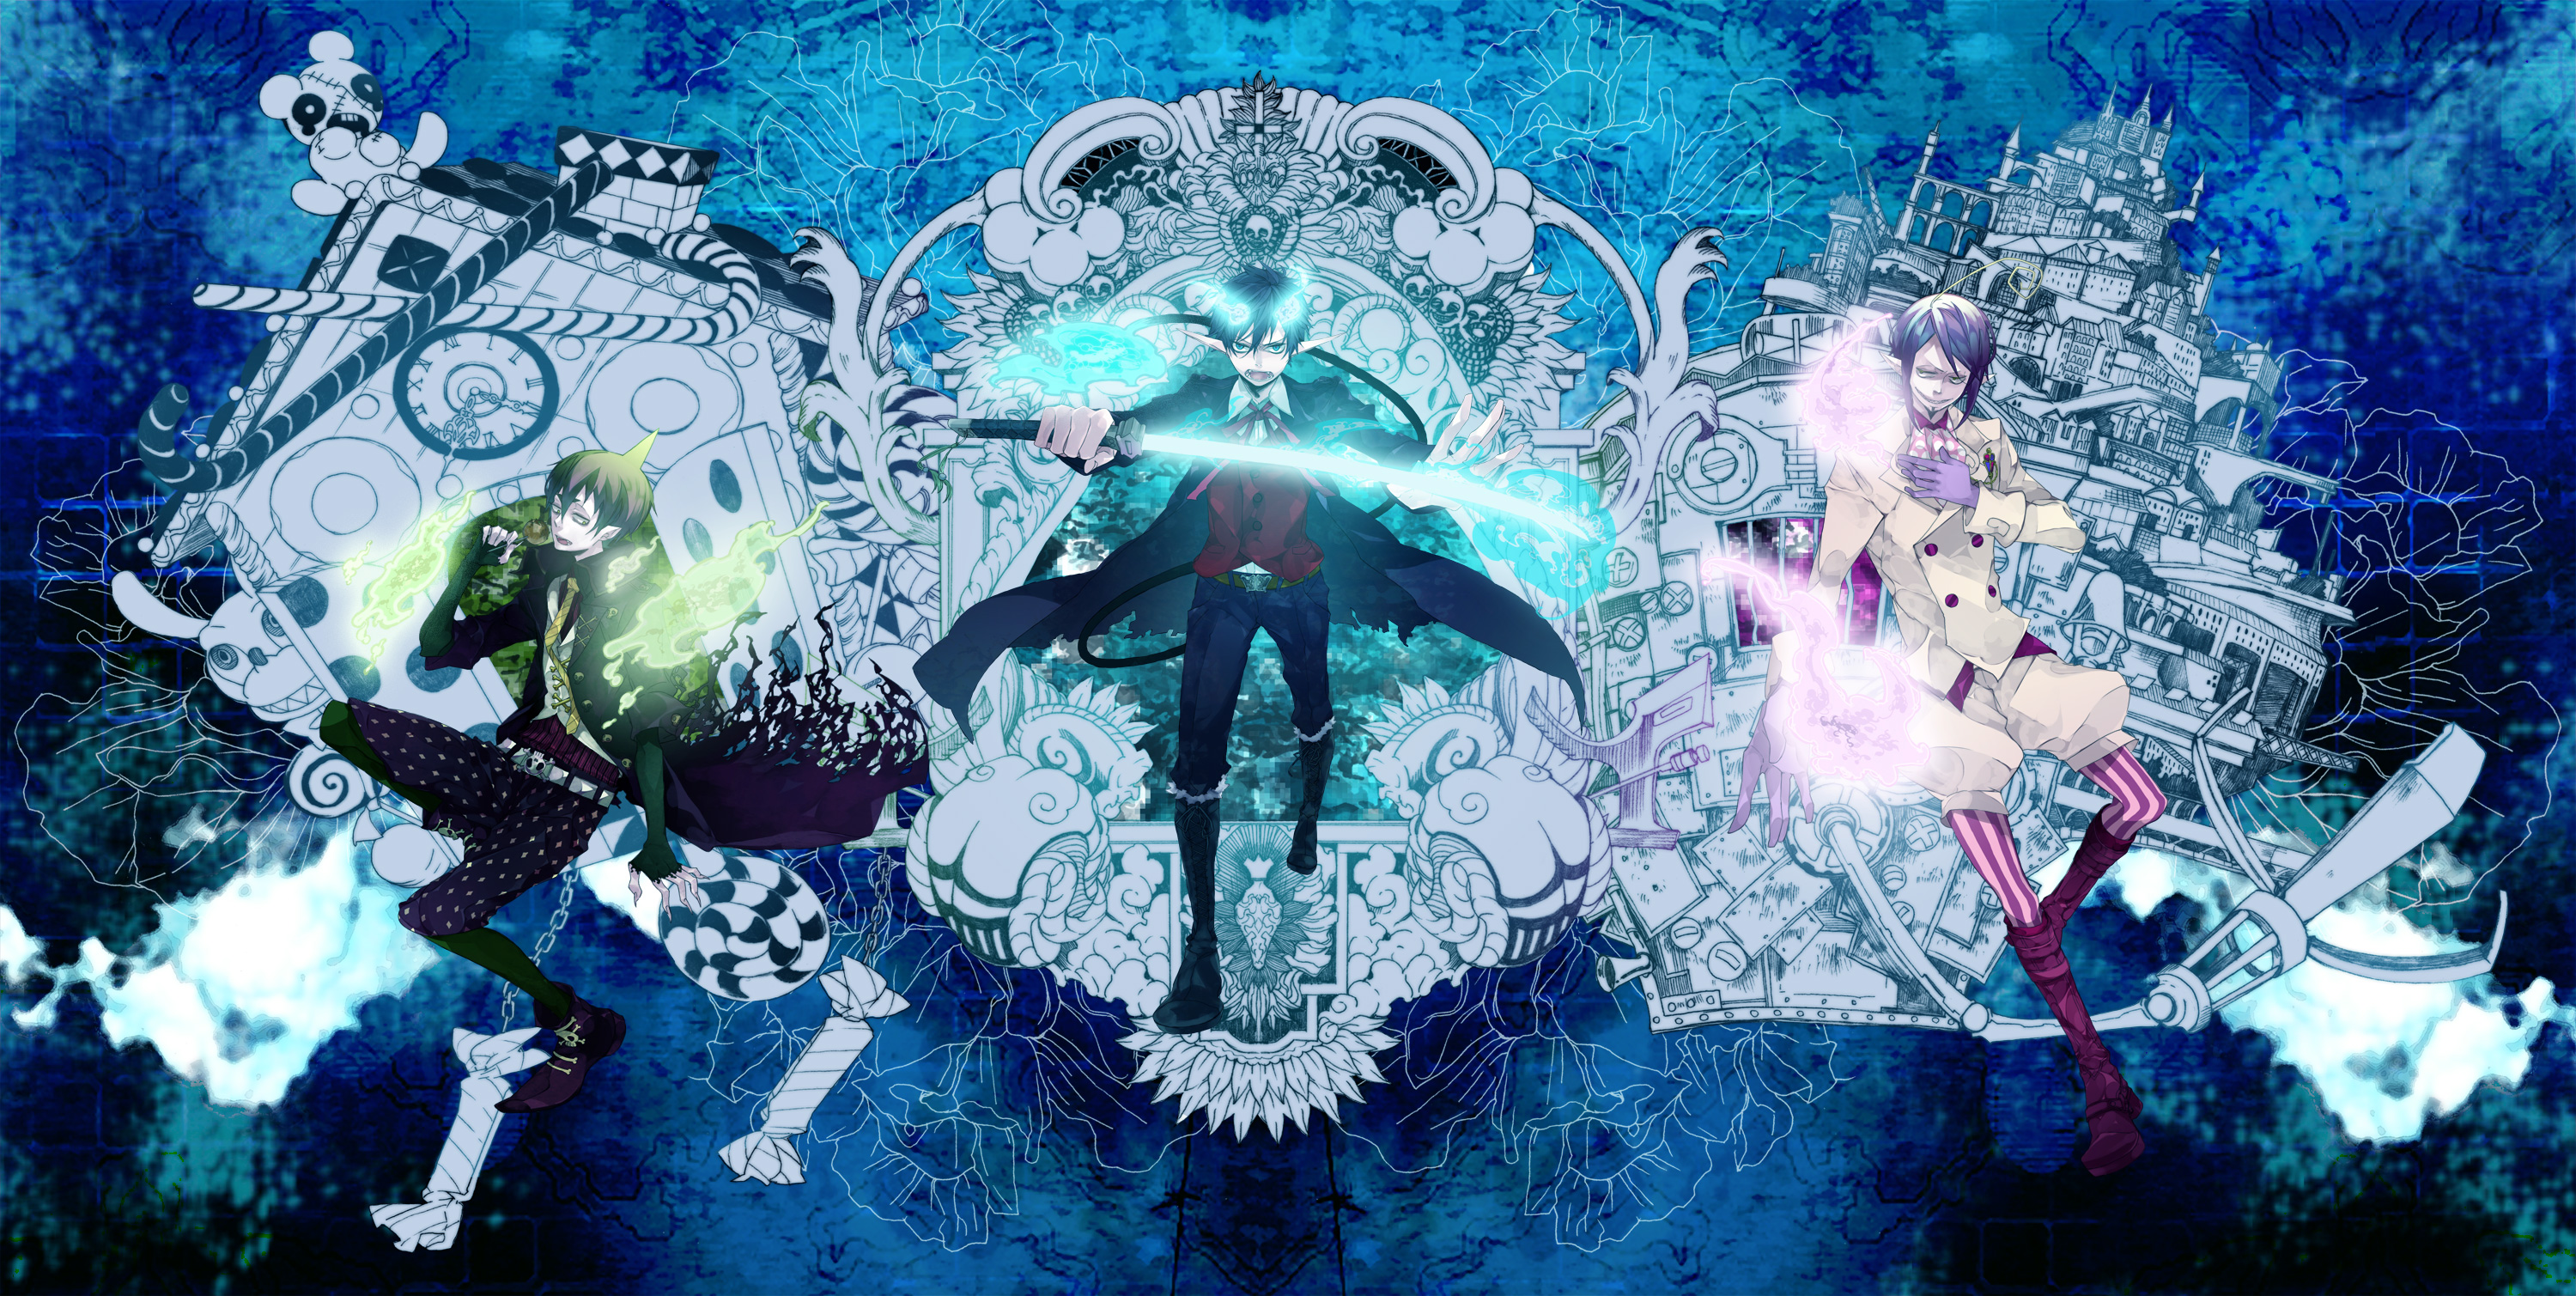 290 Blue Exorcist Hd Wallpapers Background Images Wallpaper Abyss